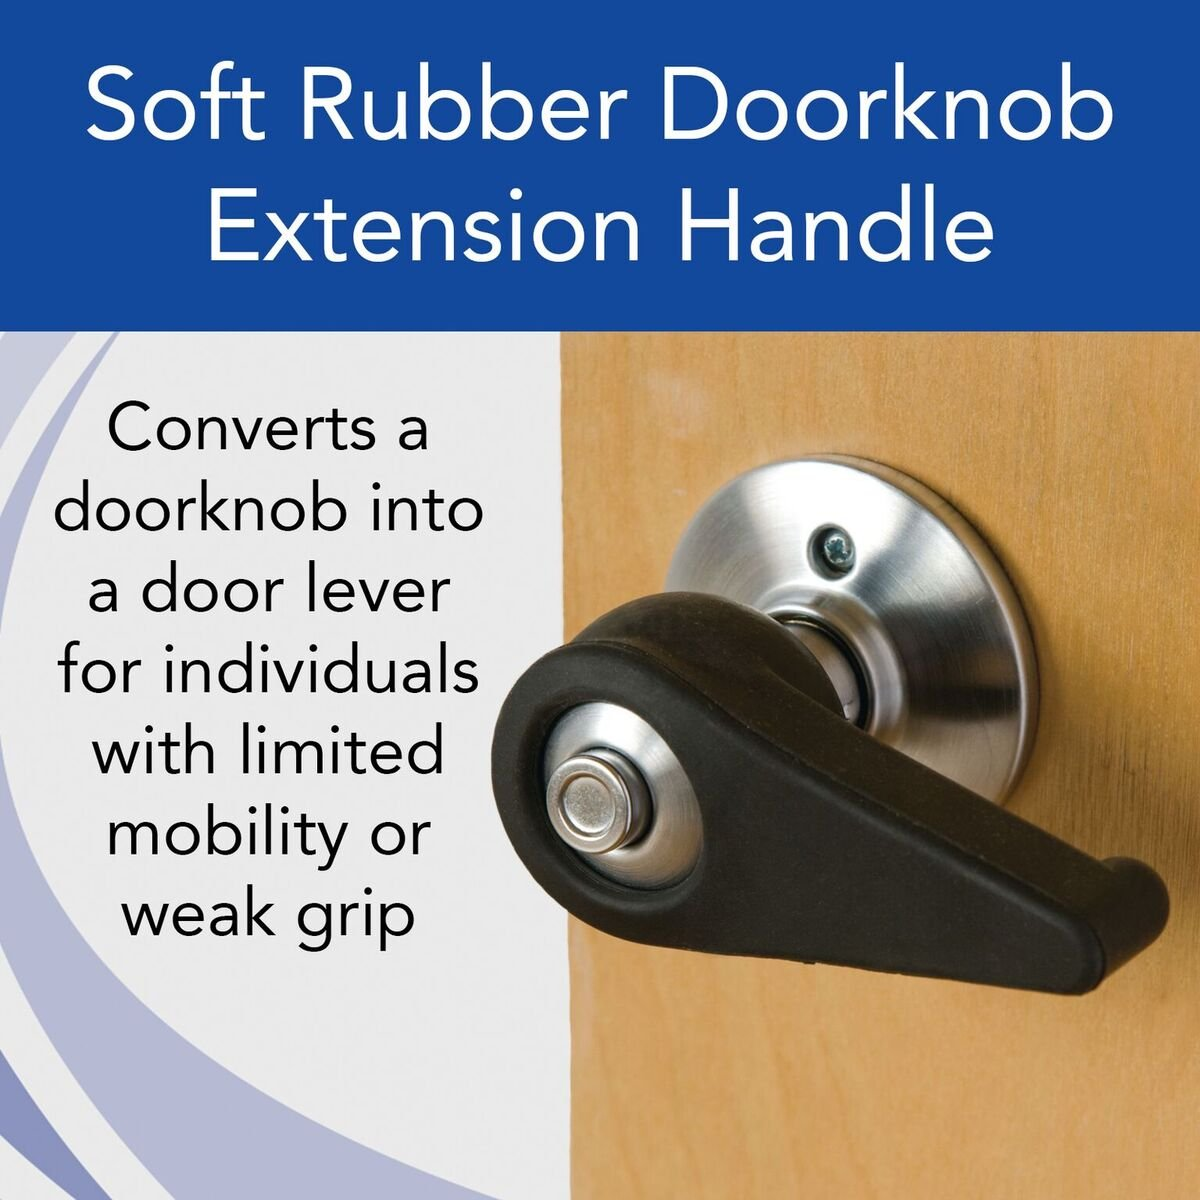 Amazon.com: Sammons Preston Soft Rubber Doorknob Extension Handle, Extender  Snaps Around Standard Door Knobs, Easy To Open Door Handle For Elderly, ...